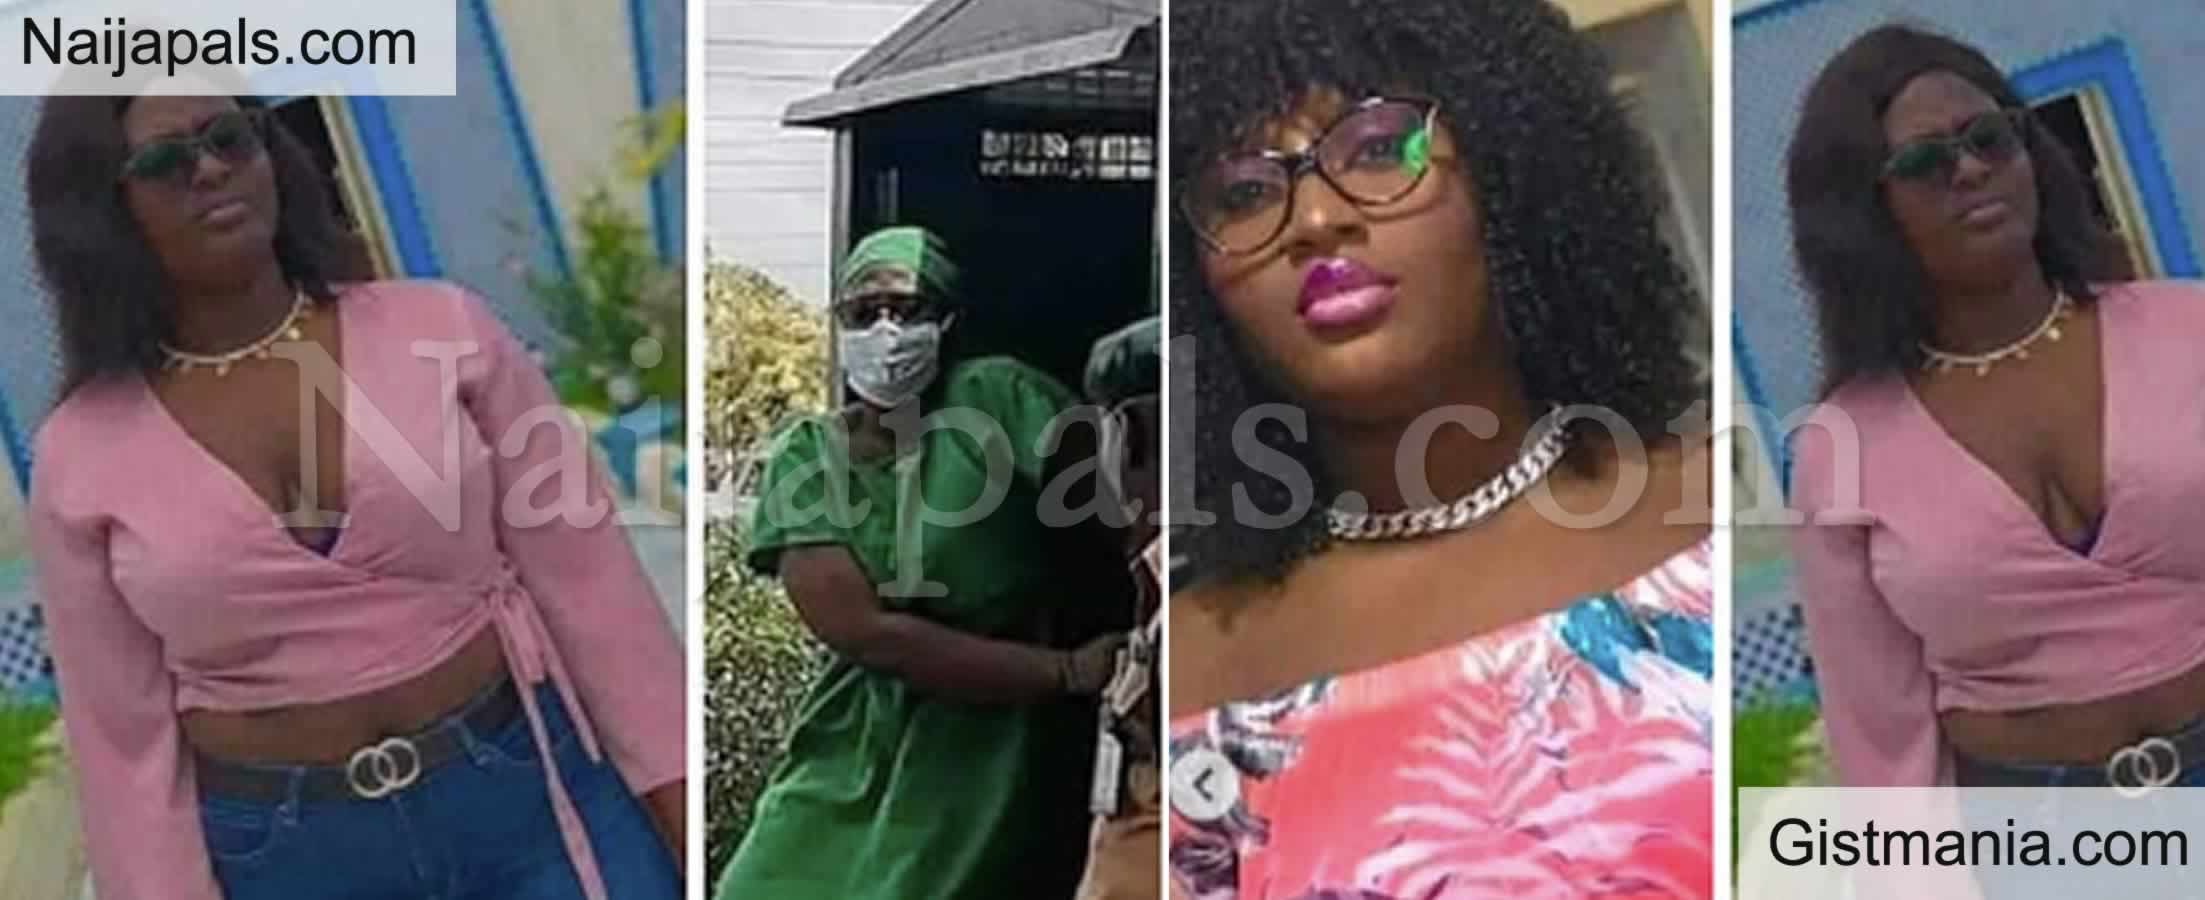 <img alt='.' class='lazyload' data-src='https://img.gistmania.com/emot/shocked.gif' /> <b>How a Slay Queen Landed In Jail For Trying to Blackmail Her Client With Their S3x Tape</b>